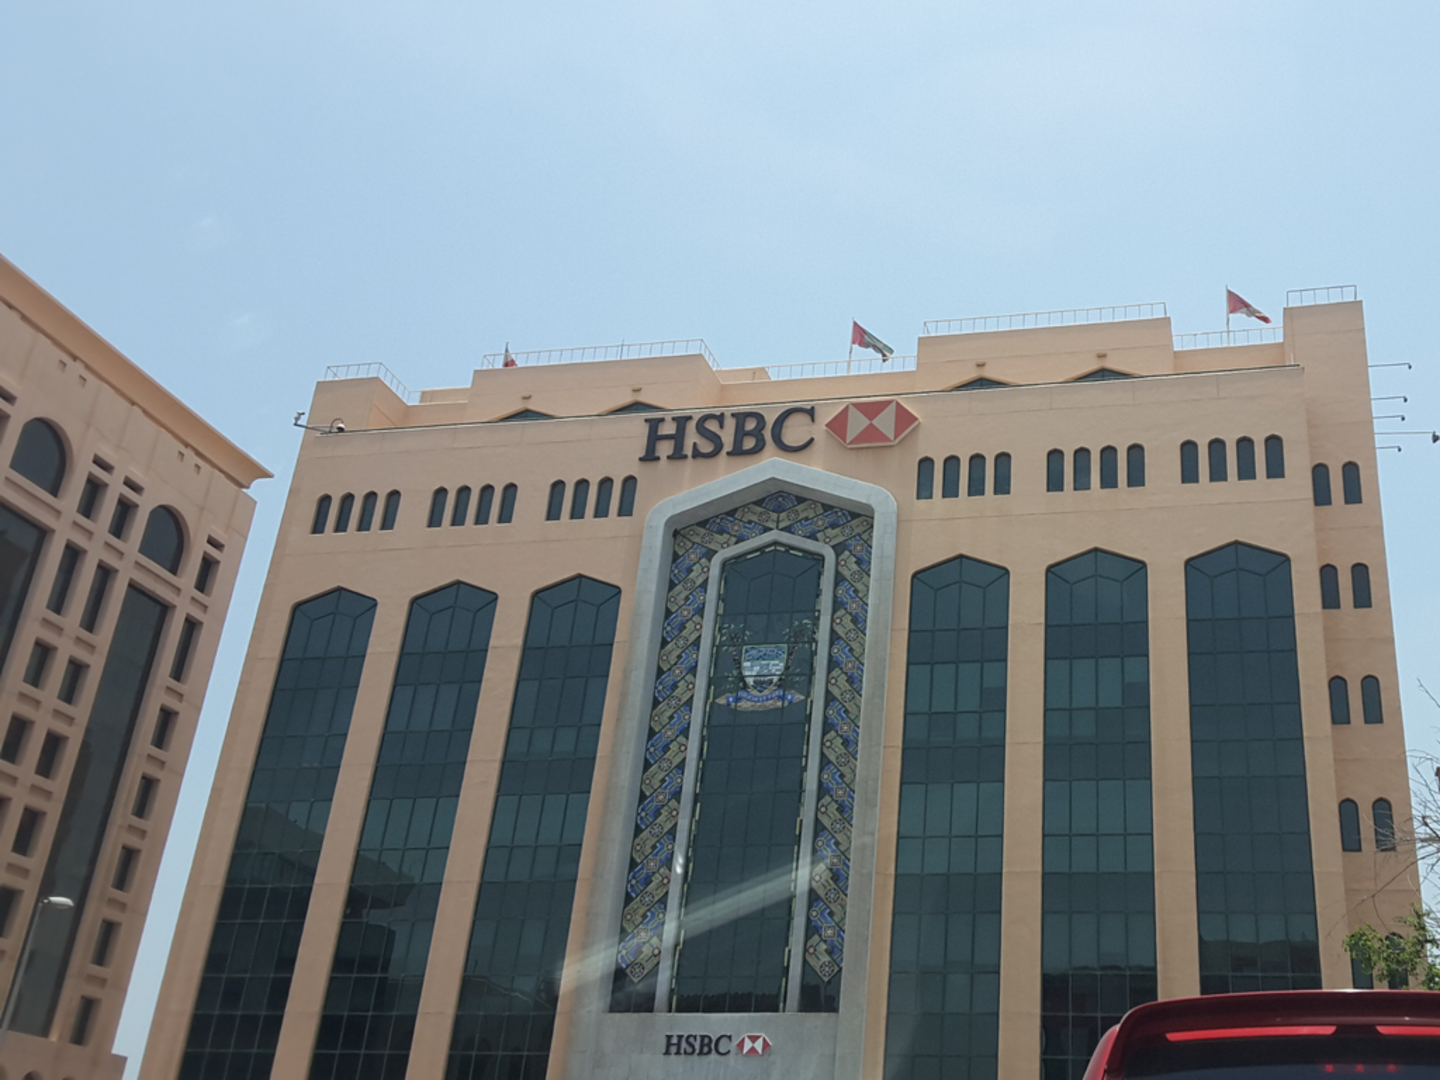 Walif-business-hsbc-bank-5